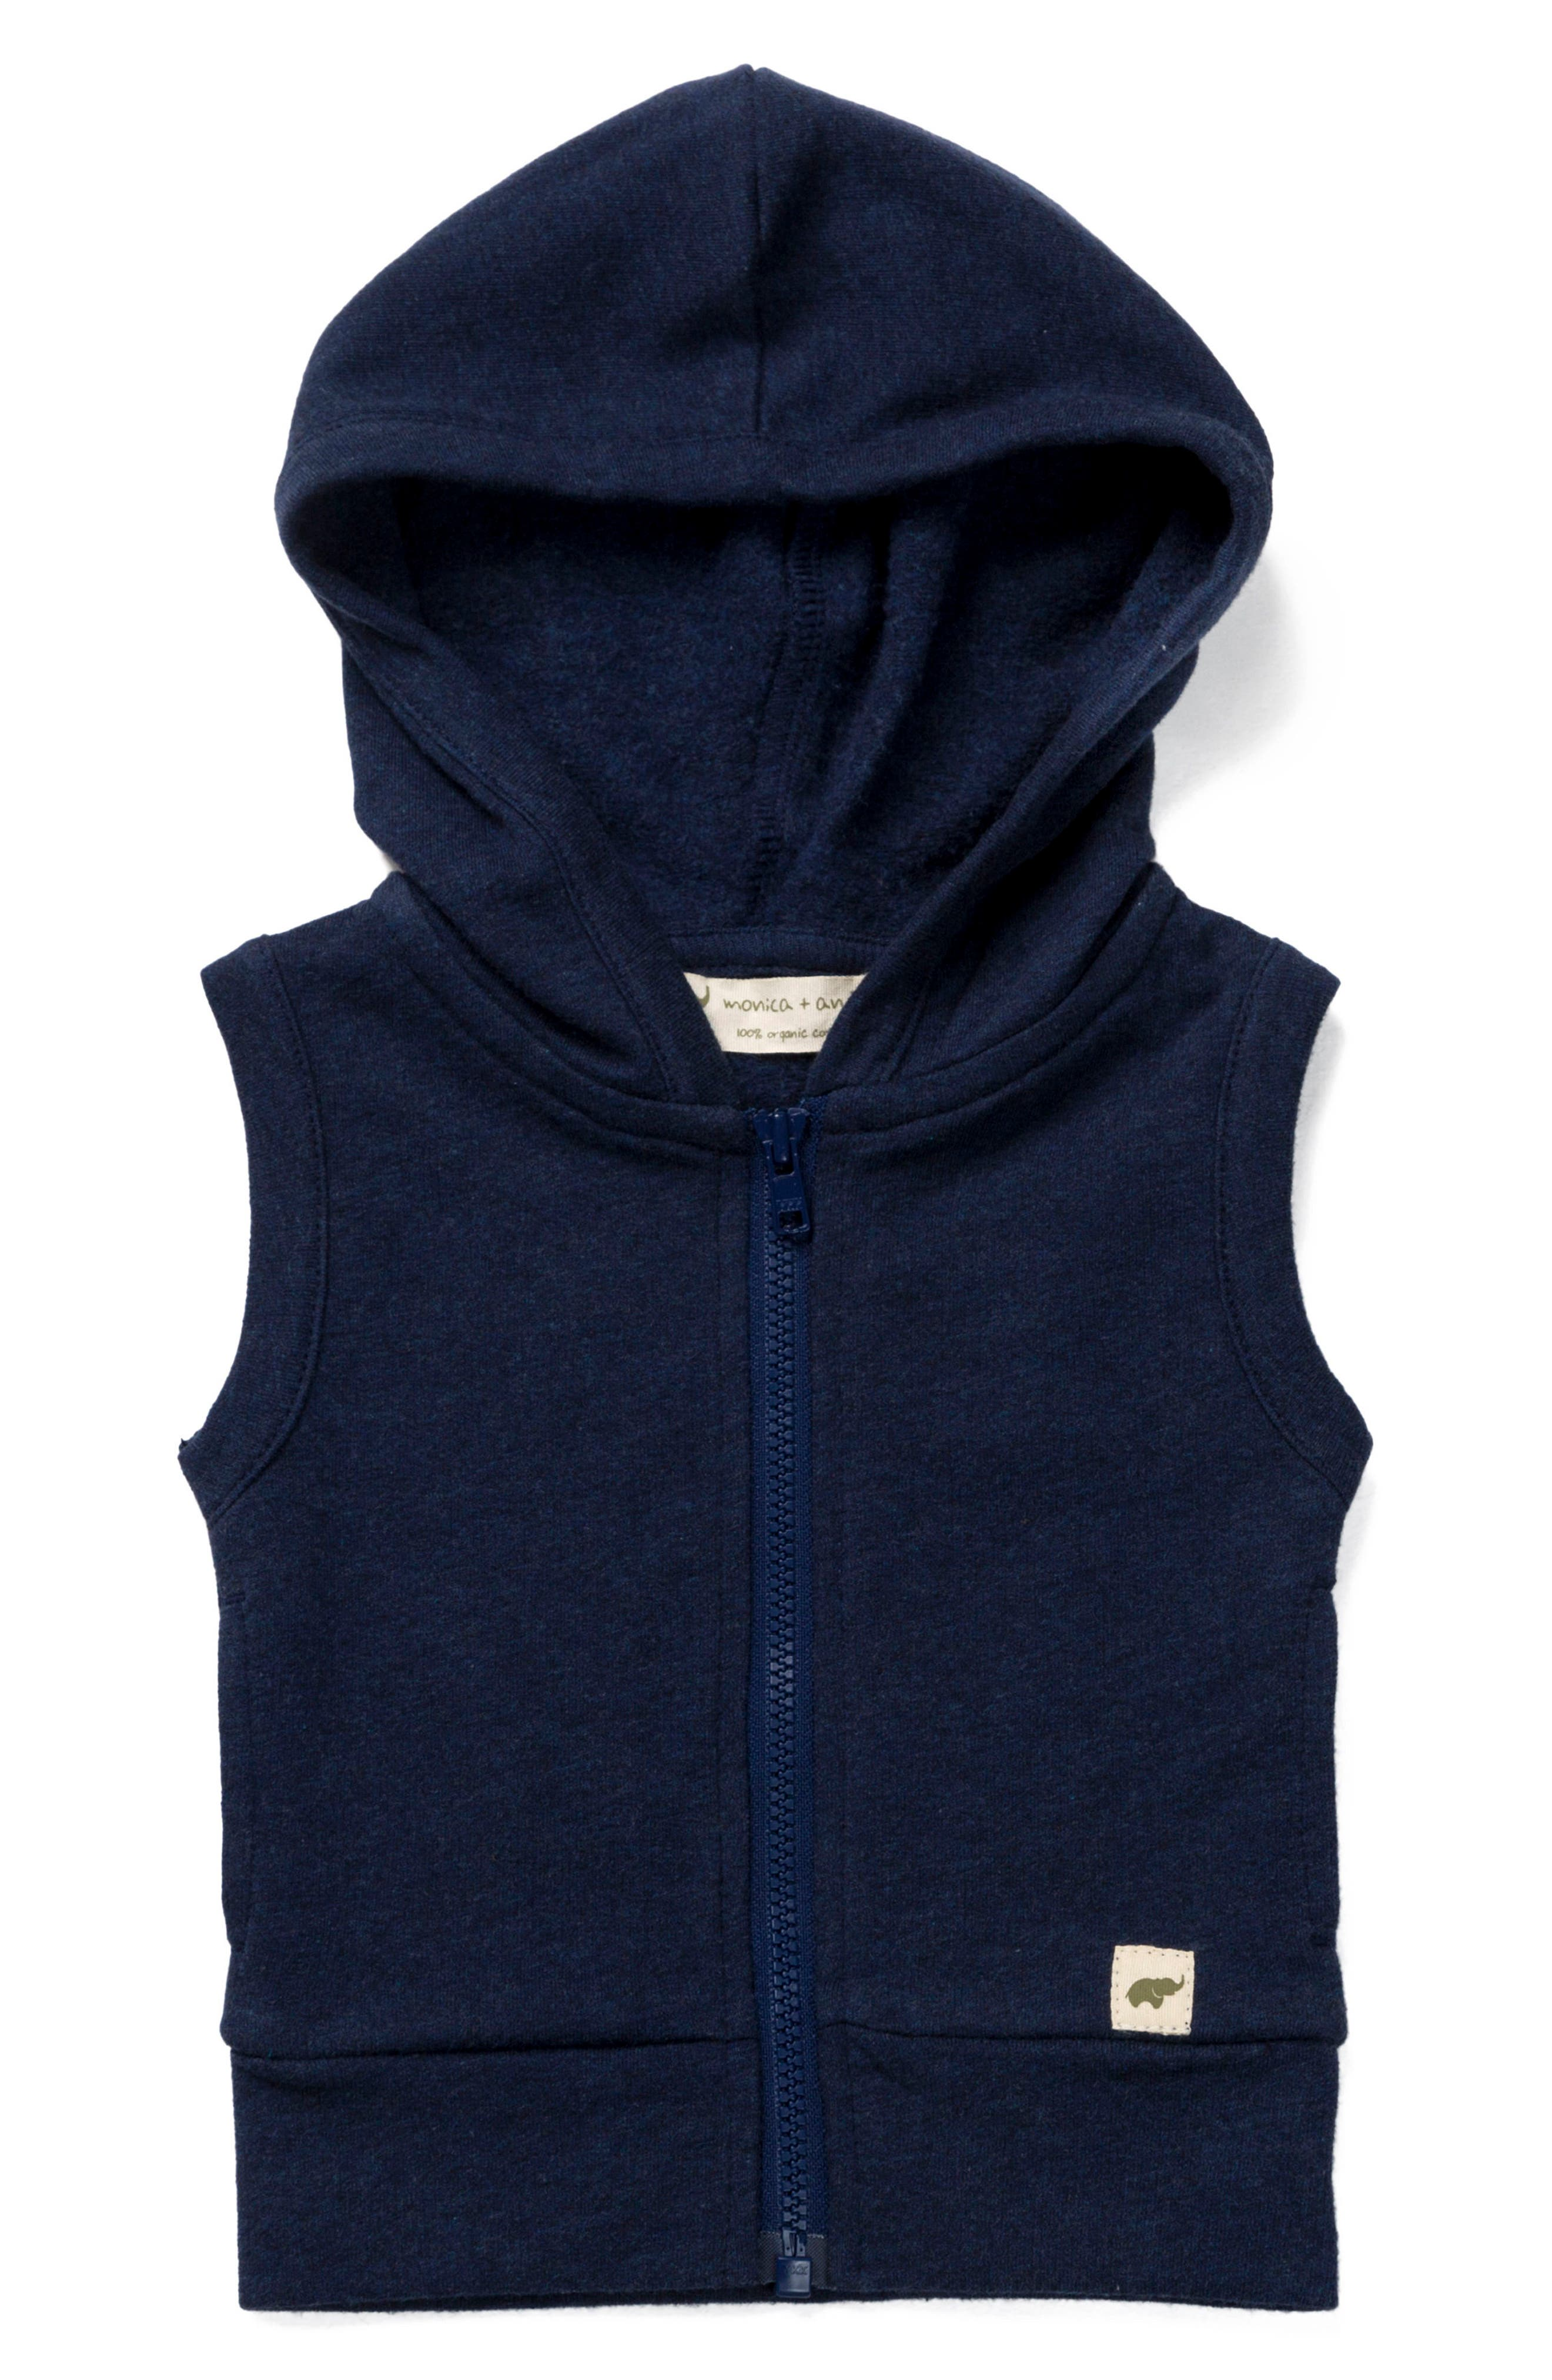 Monica + Andy Organic Cotton Sleeveless Hoodie (Toddler Boys)